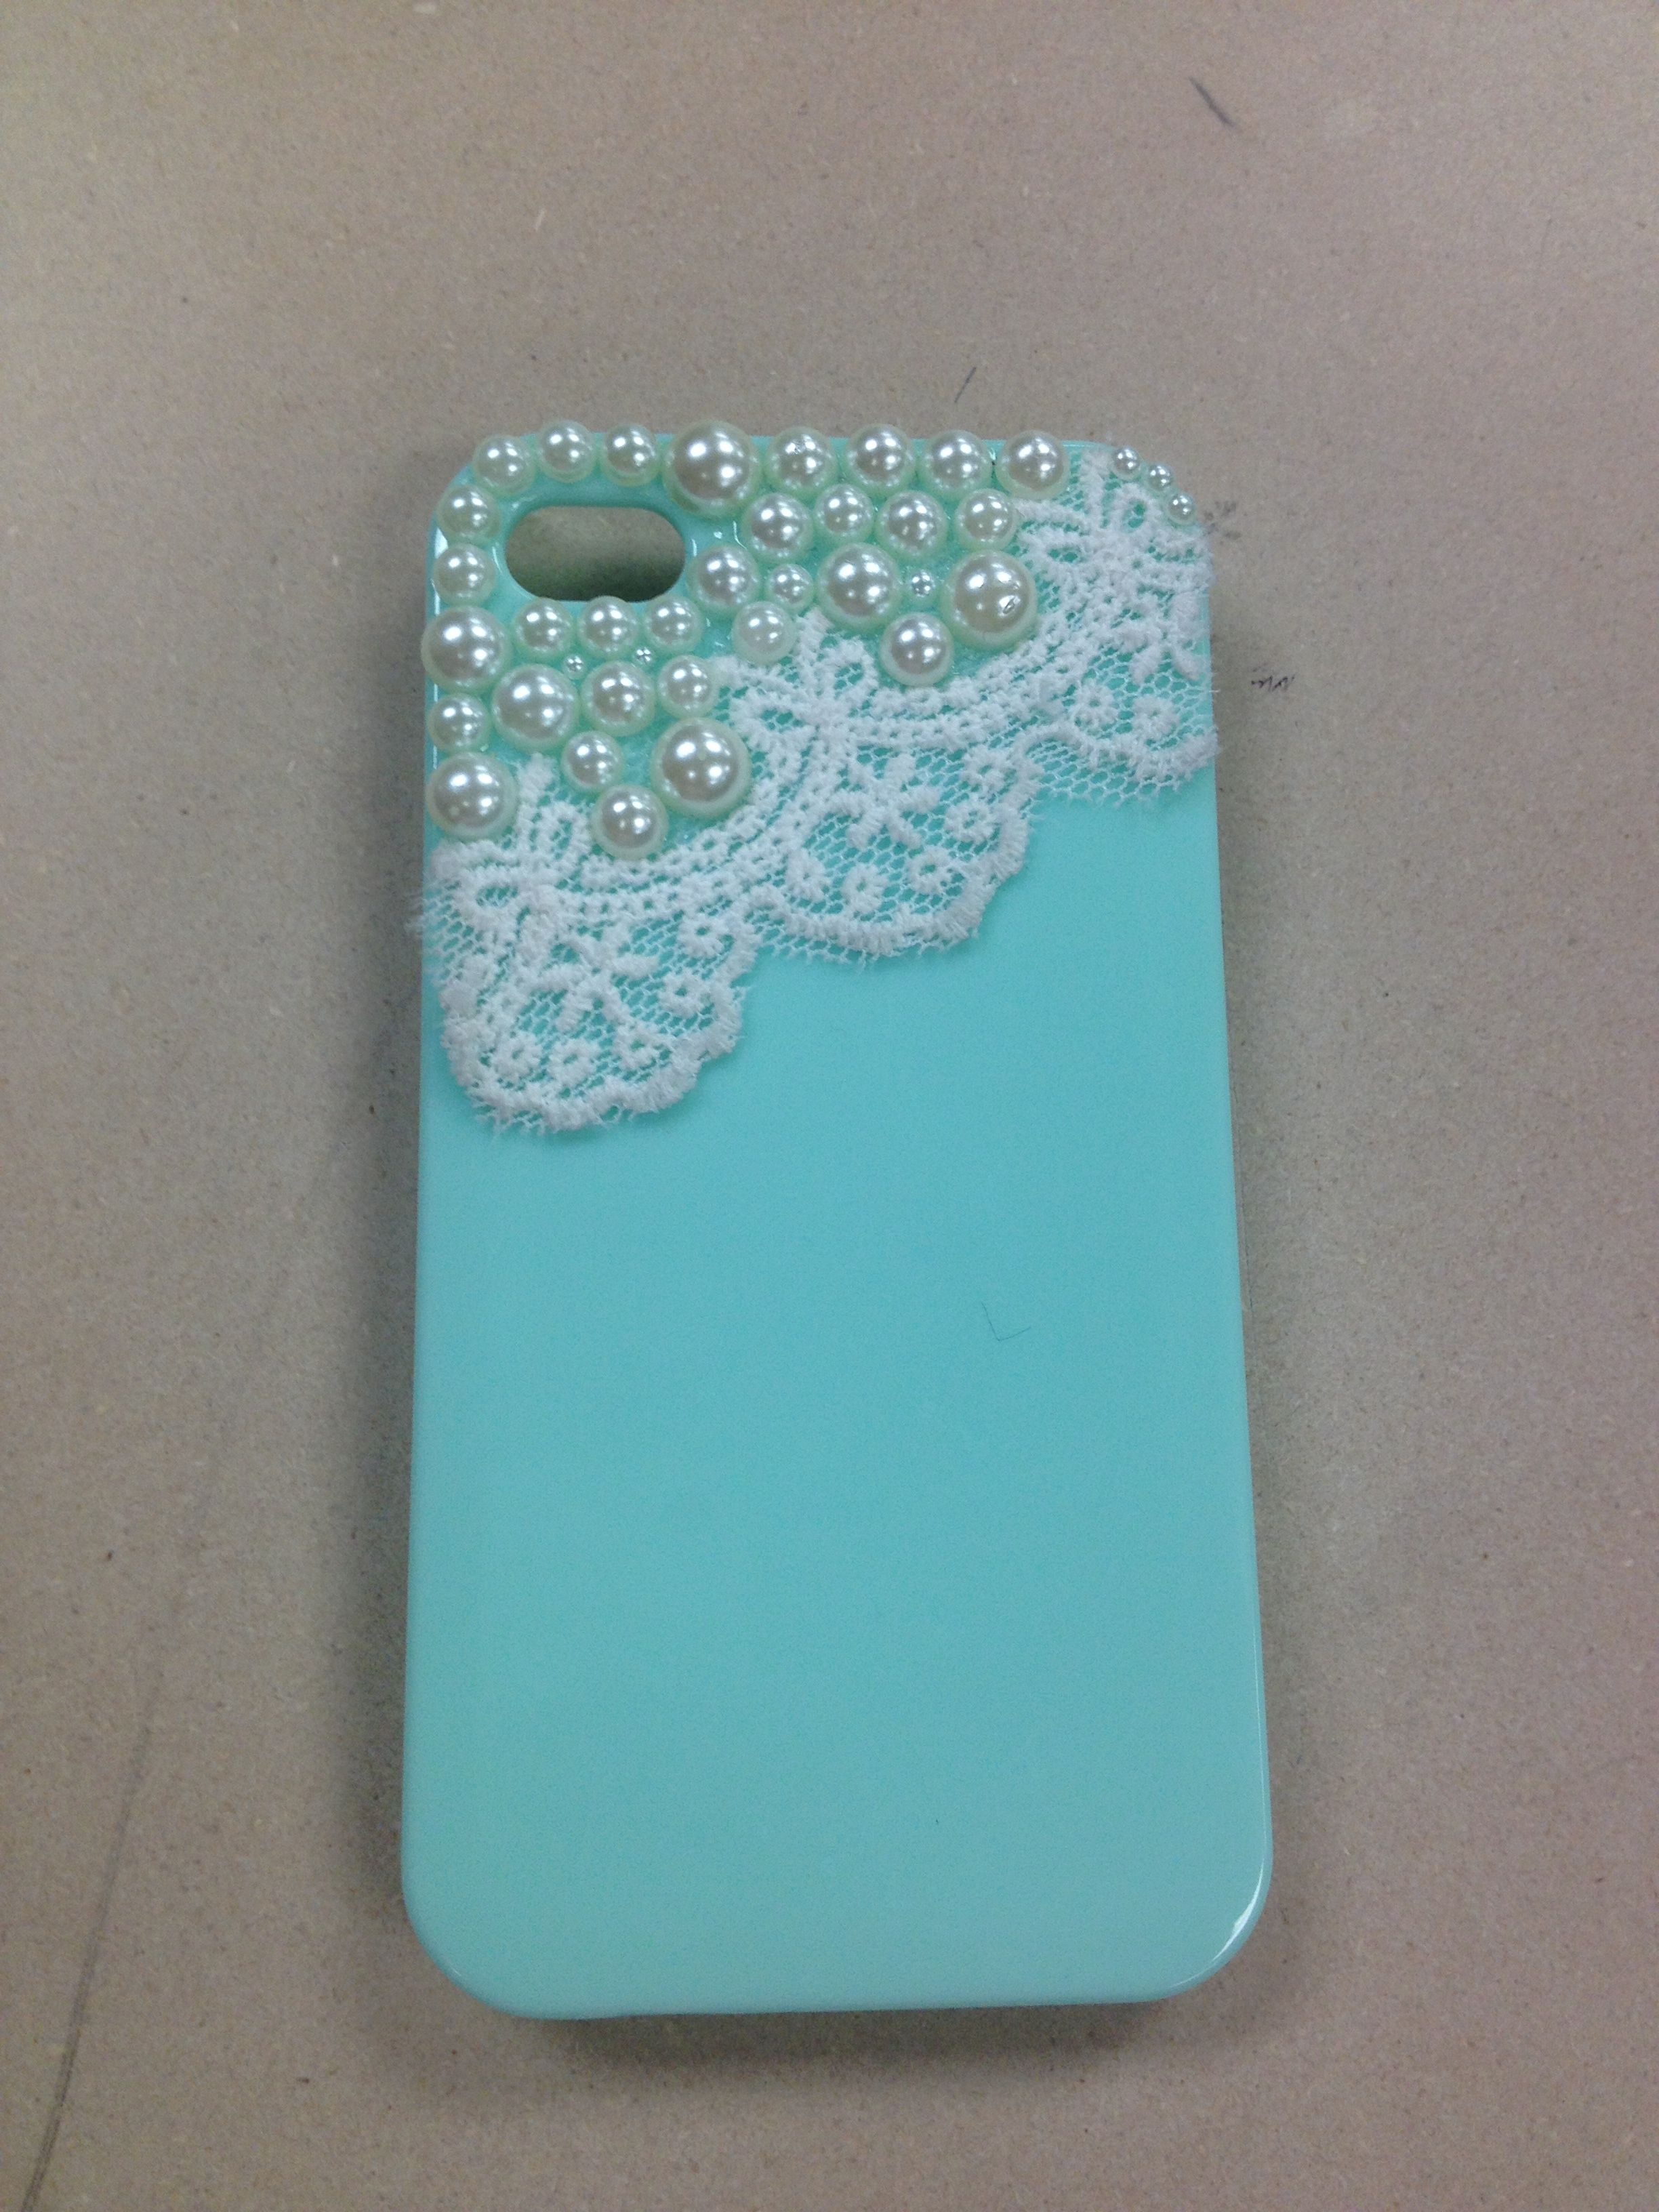 Diy Lace Phone Case Diy Lace Phone Case Diy Phone Case Lace Phone Case